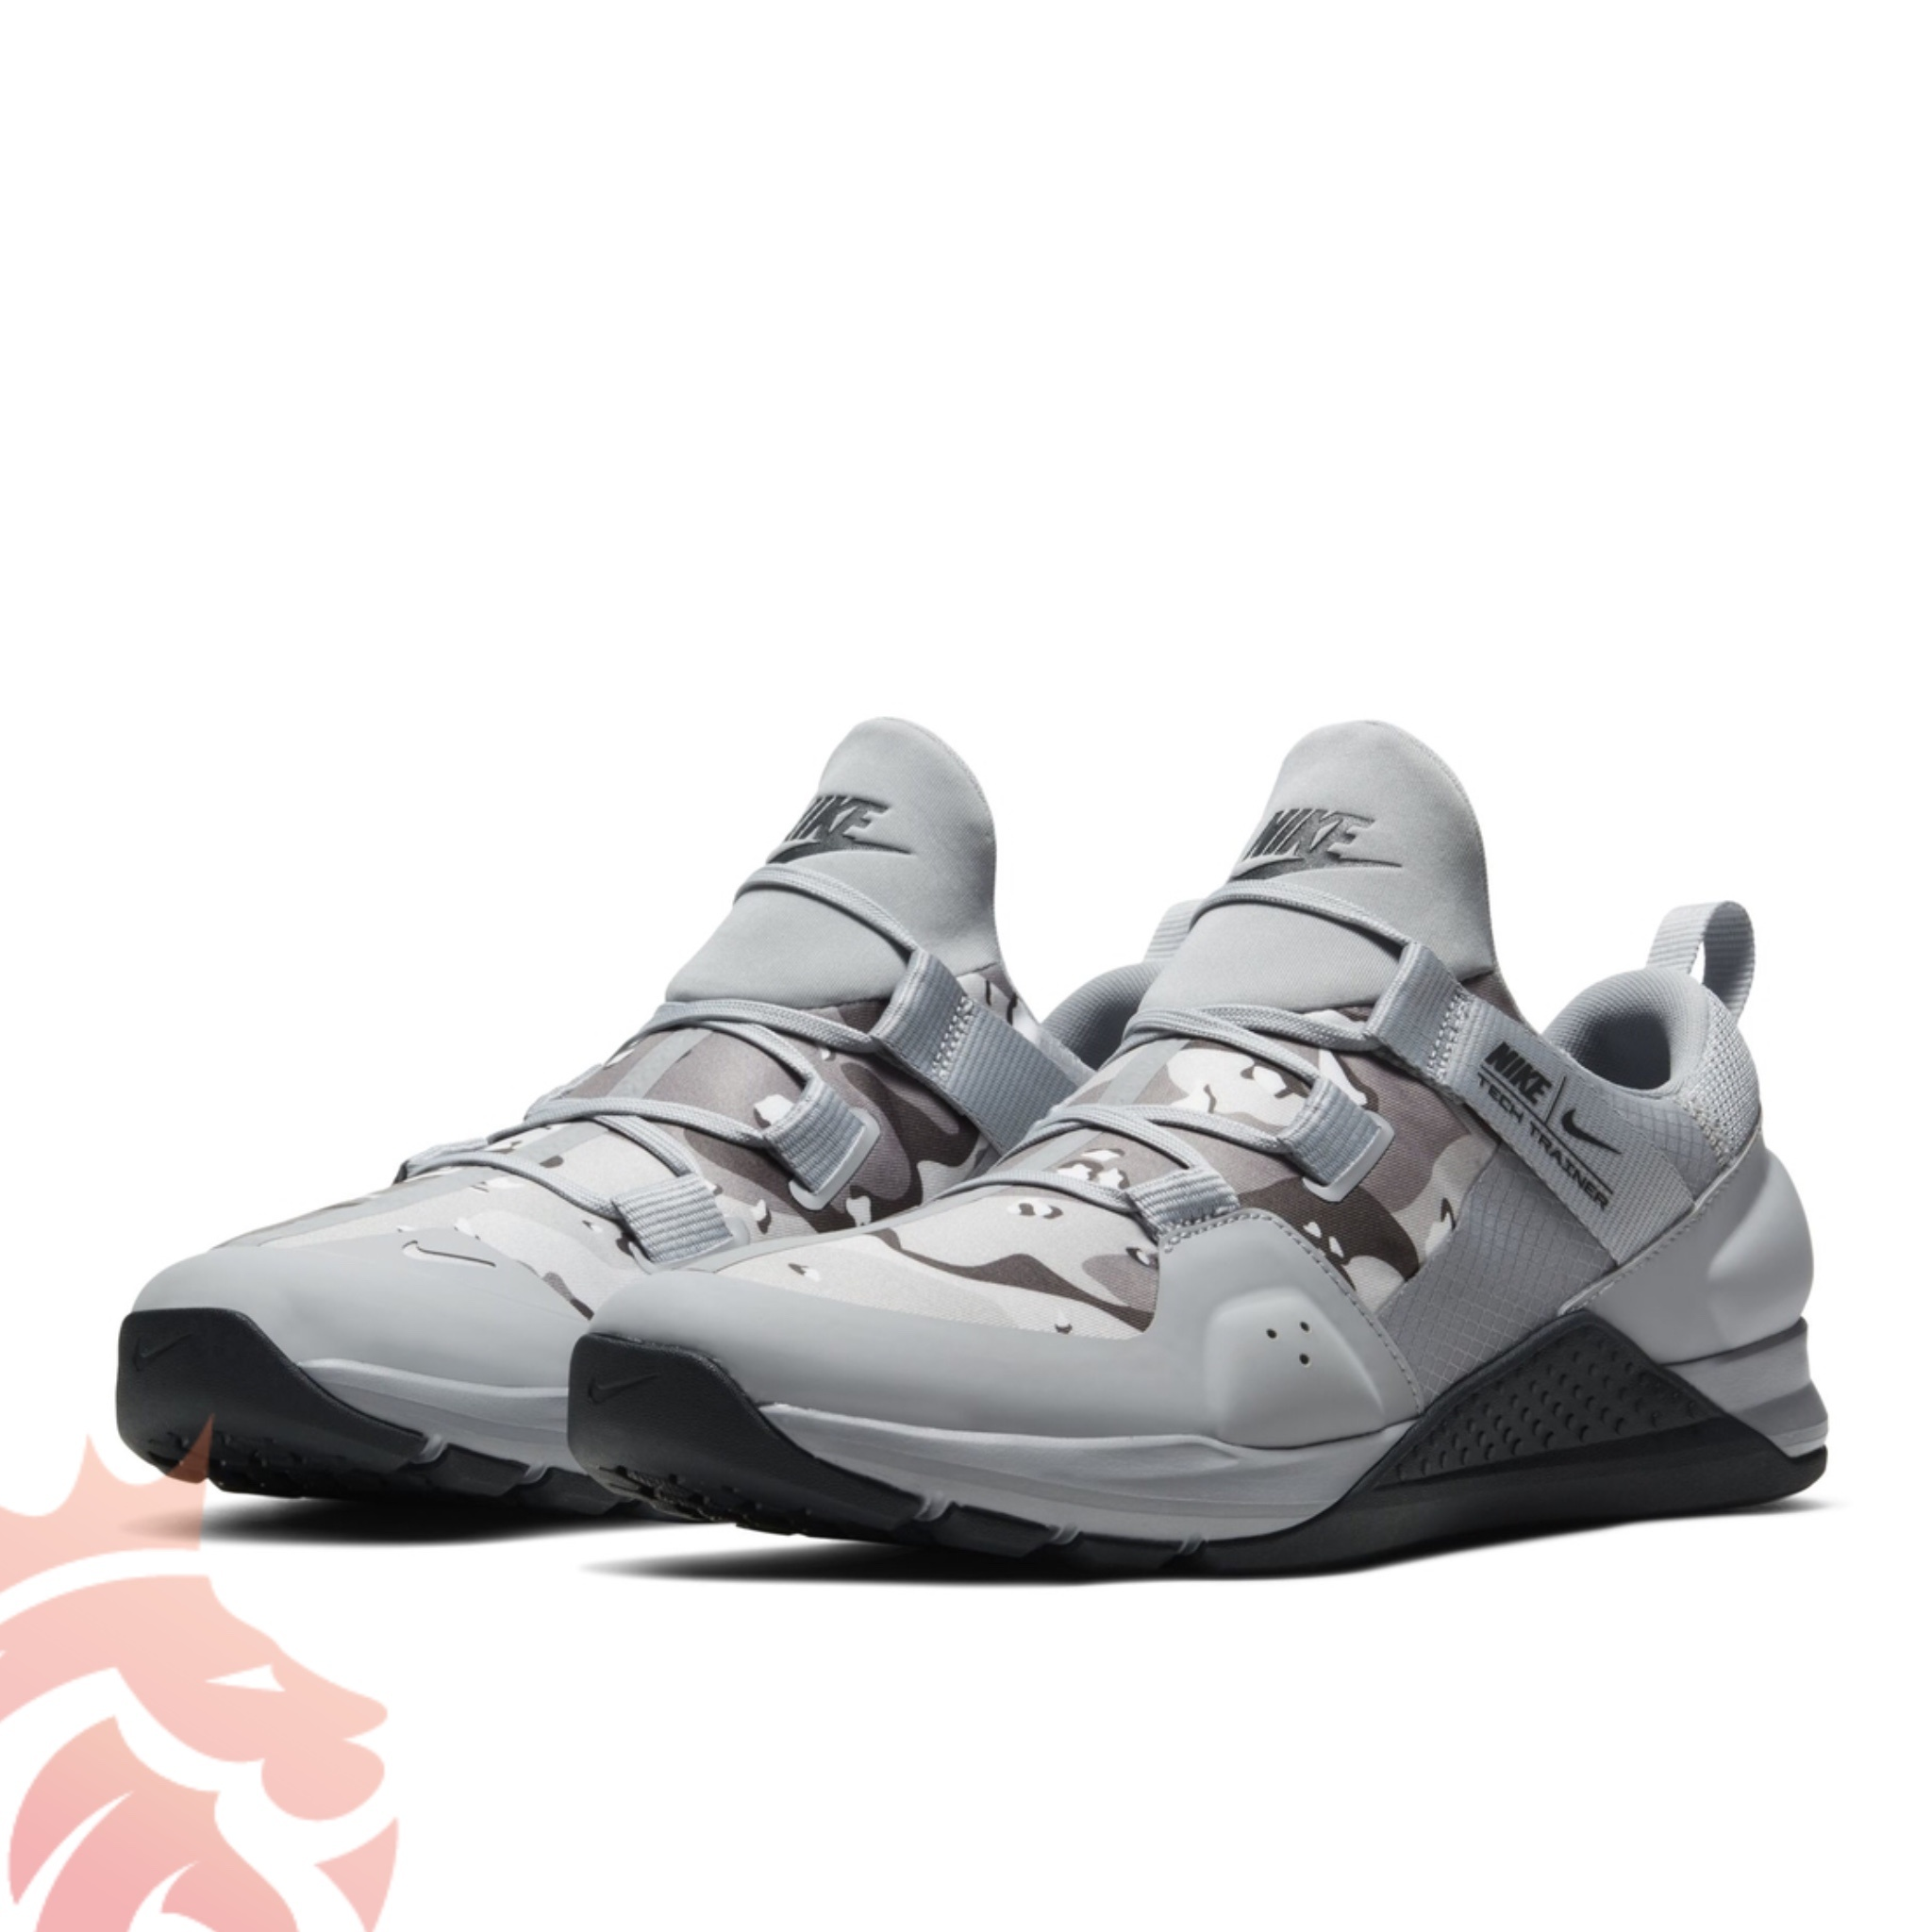 Nike Tech Trainer Grey Camo Colorway